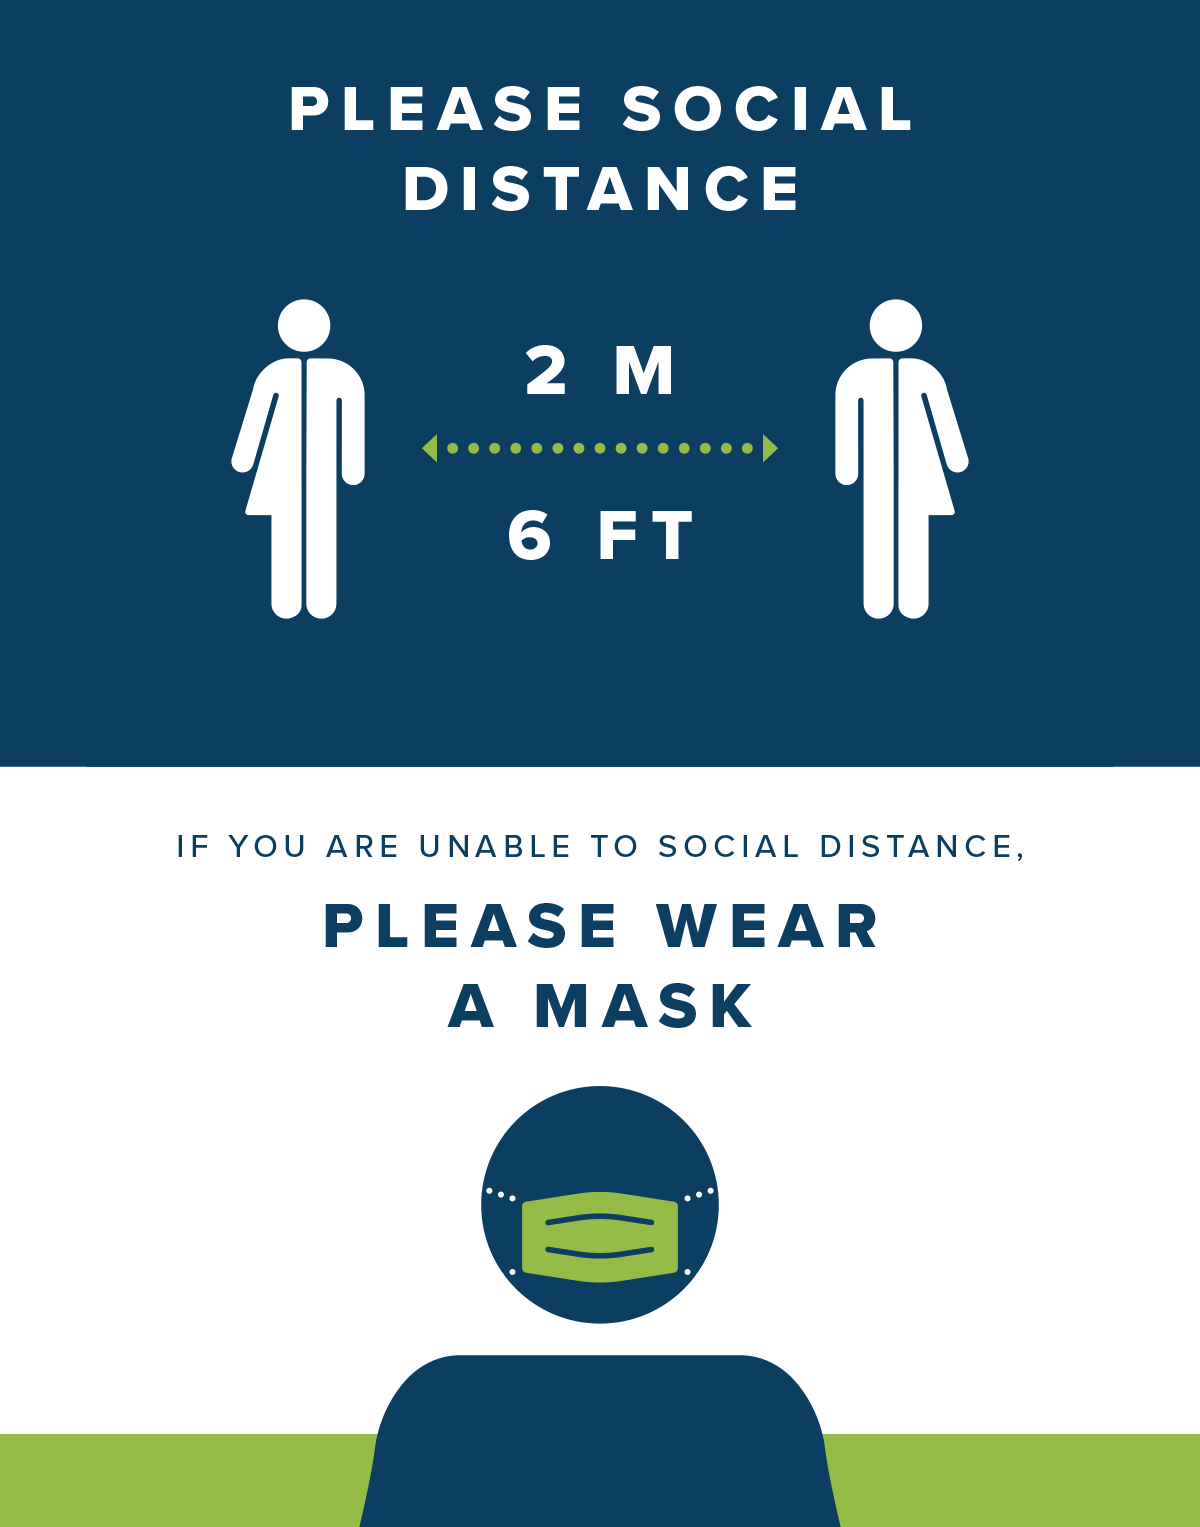 please social distance and where a mask if you can't